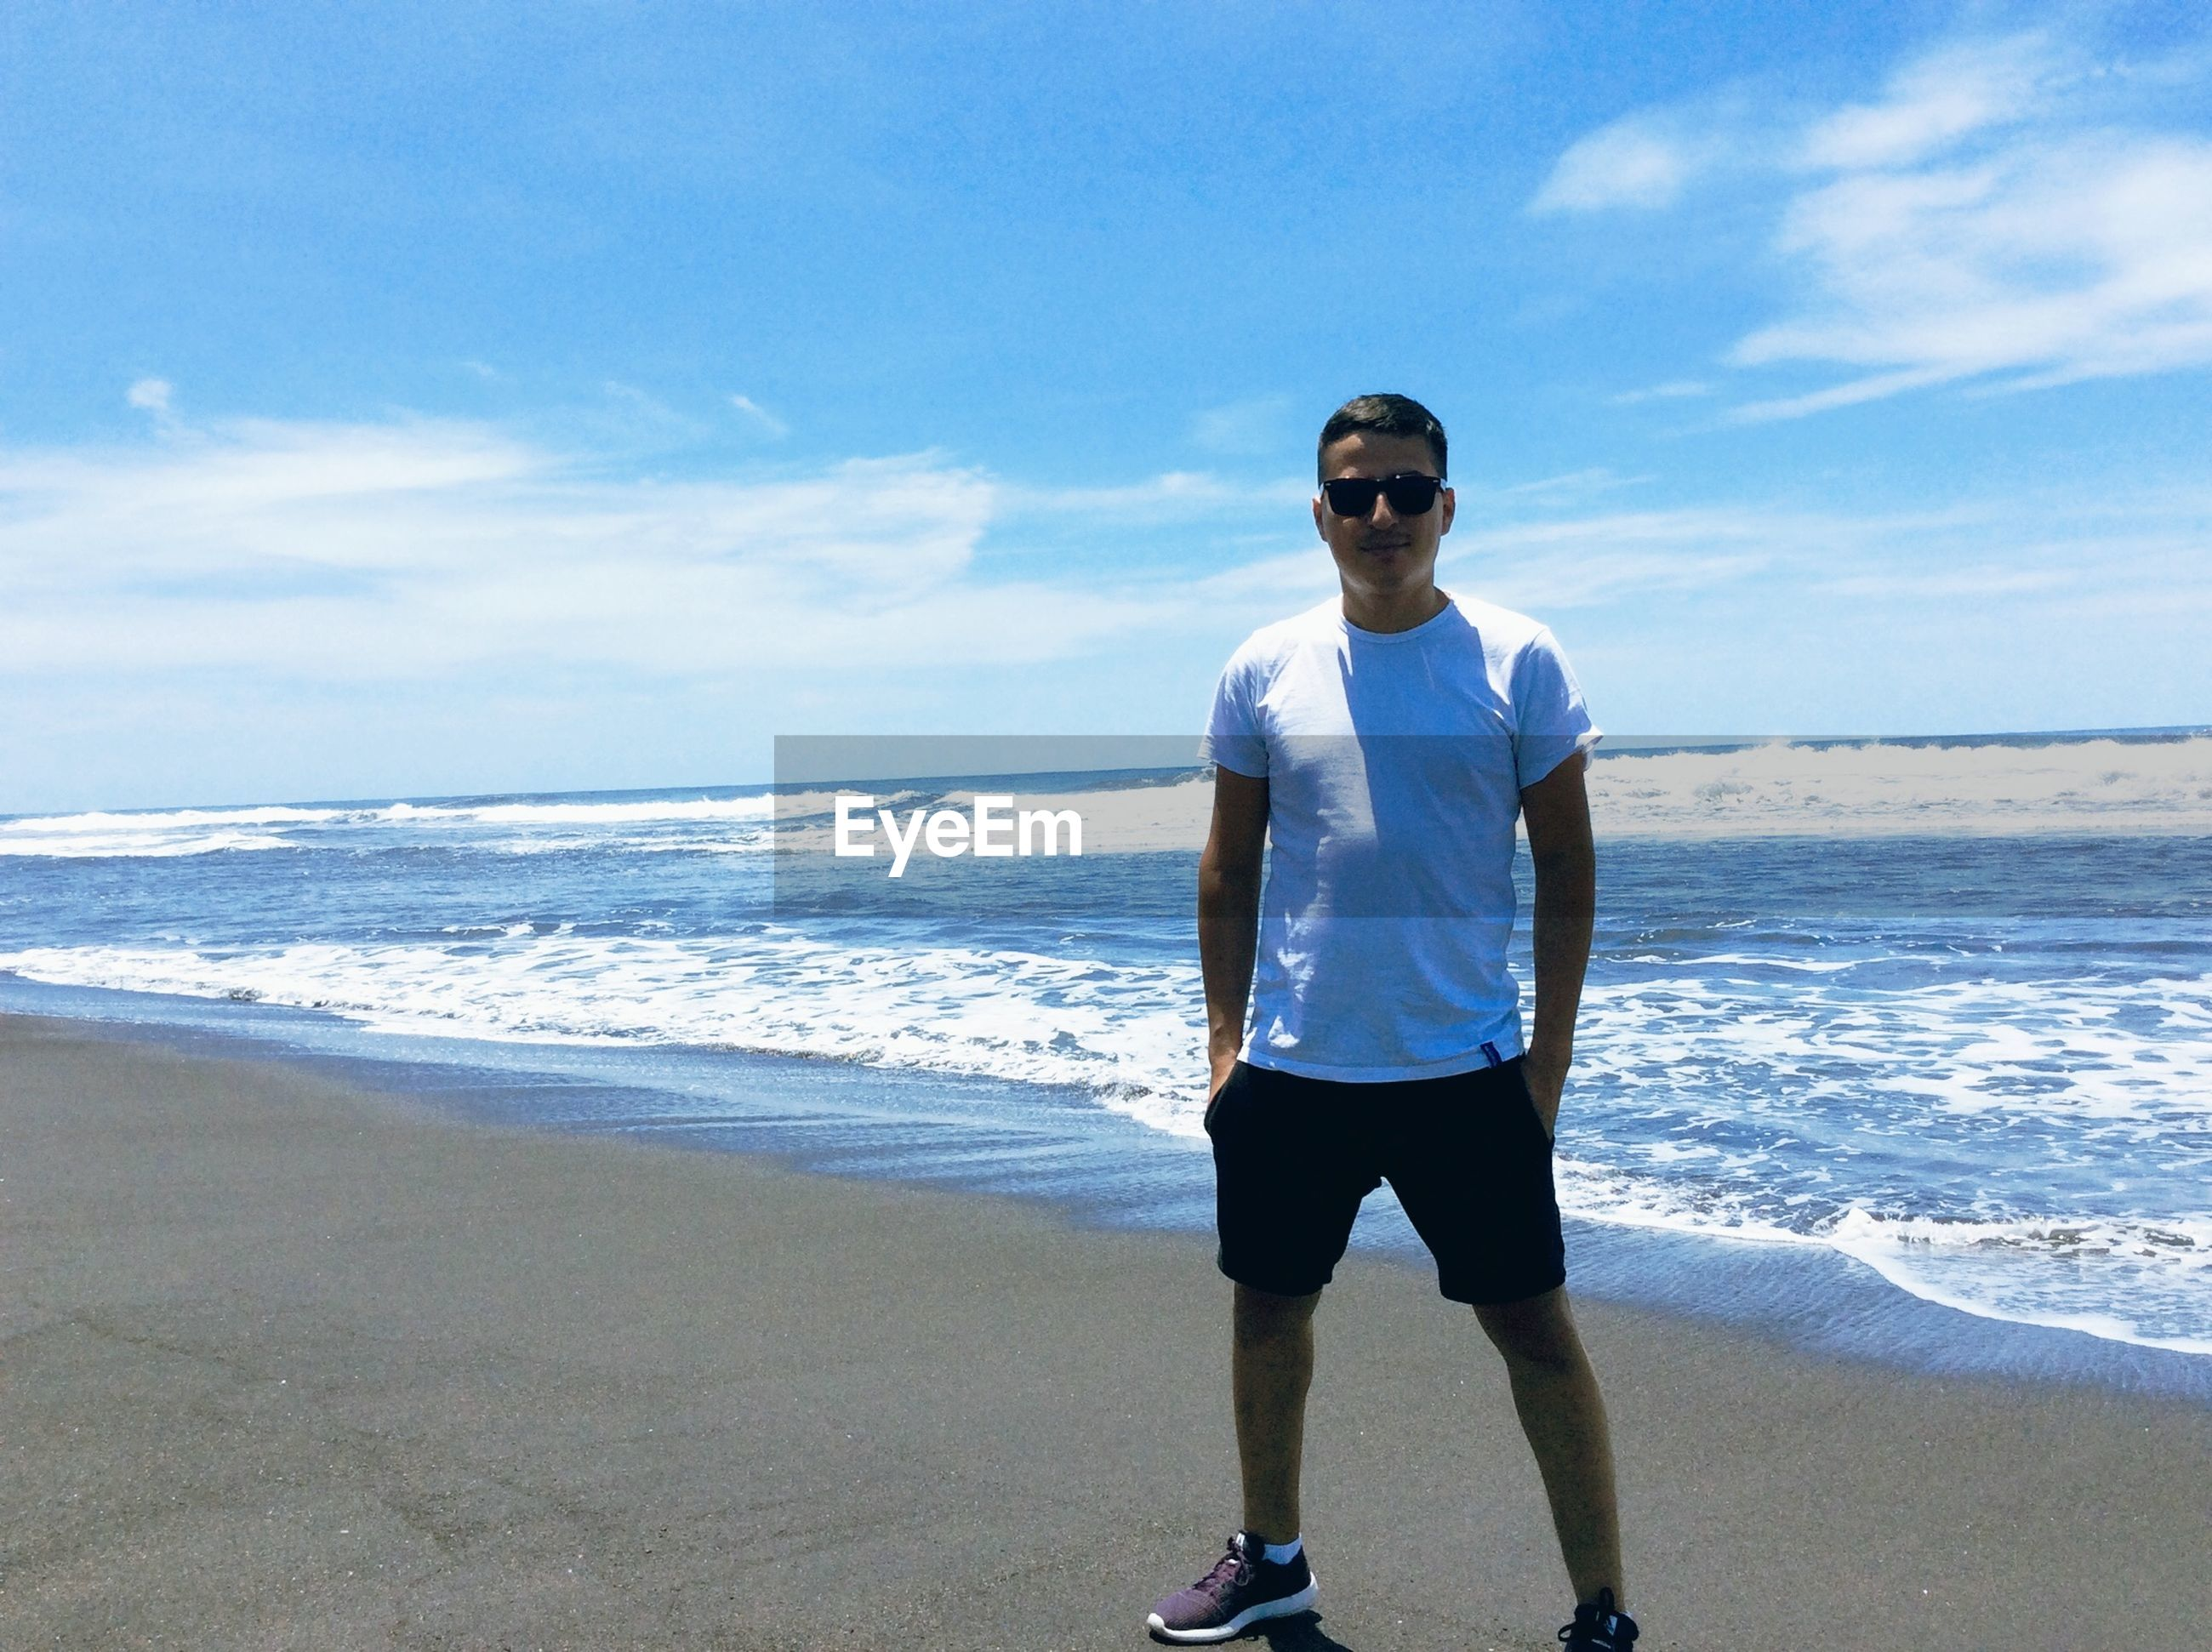 beach, sea, shore, horizon over water, water, sky, full length, sand, lifestyles, casual clothing, leisure activity, standing, person, vacations, front view, rear view, scenics, looking at camera